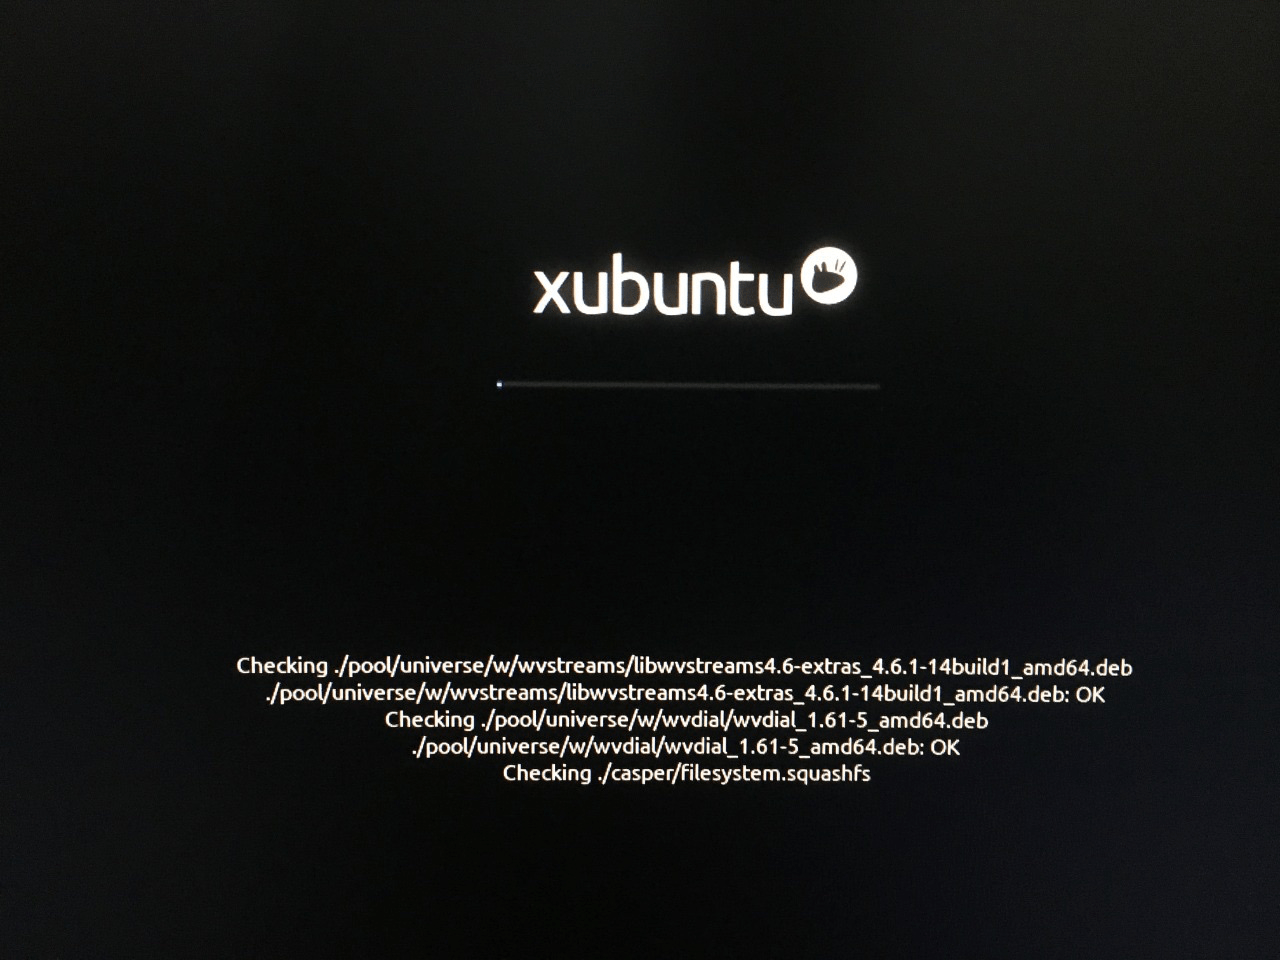 Let the Xubuntu ore Linux distribution load, and it will check the removable drive for errors & stability